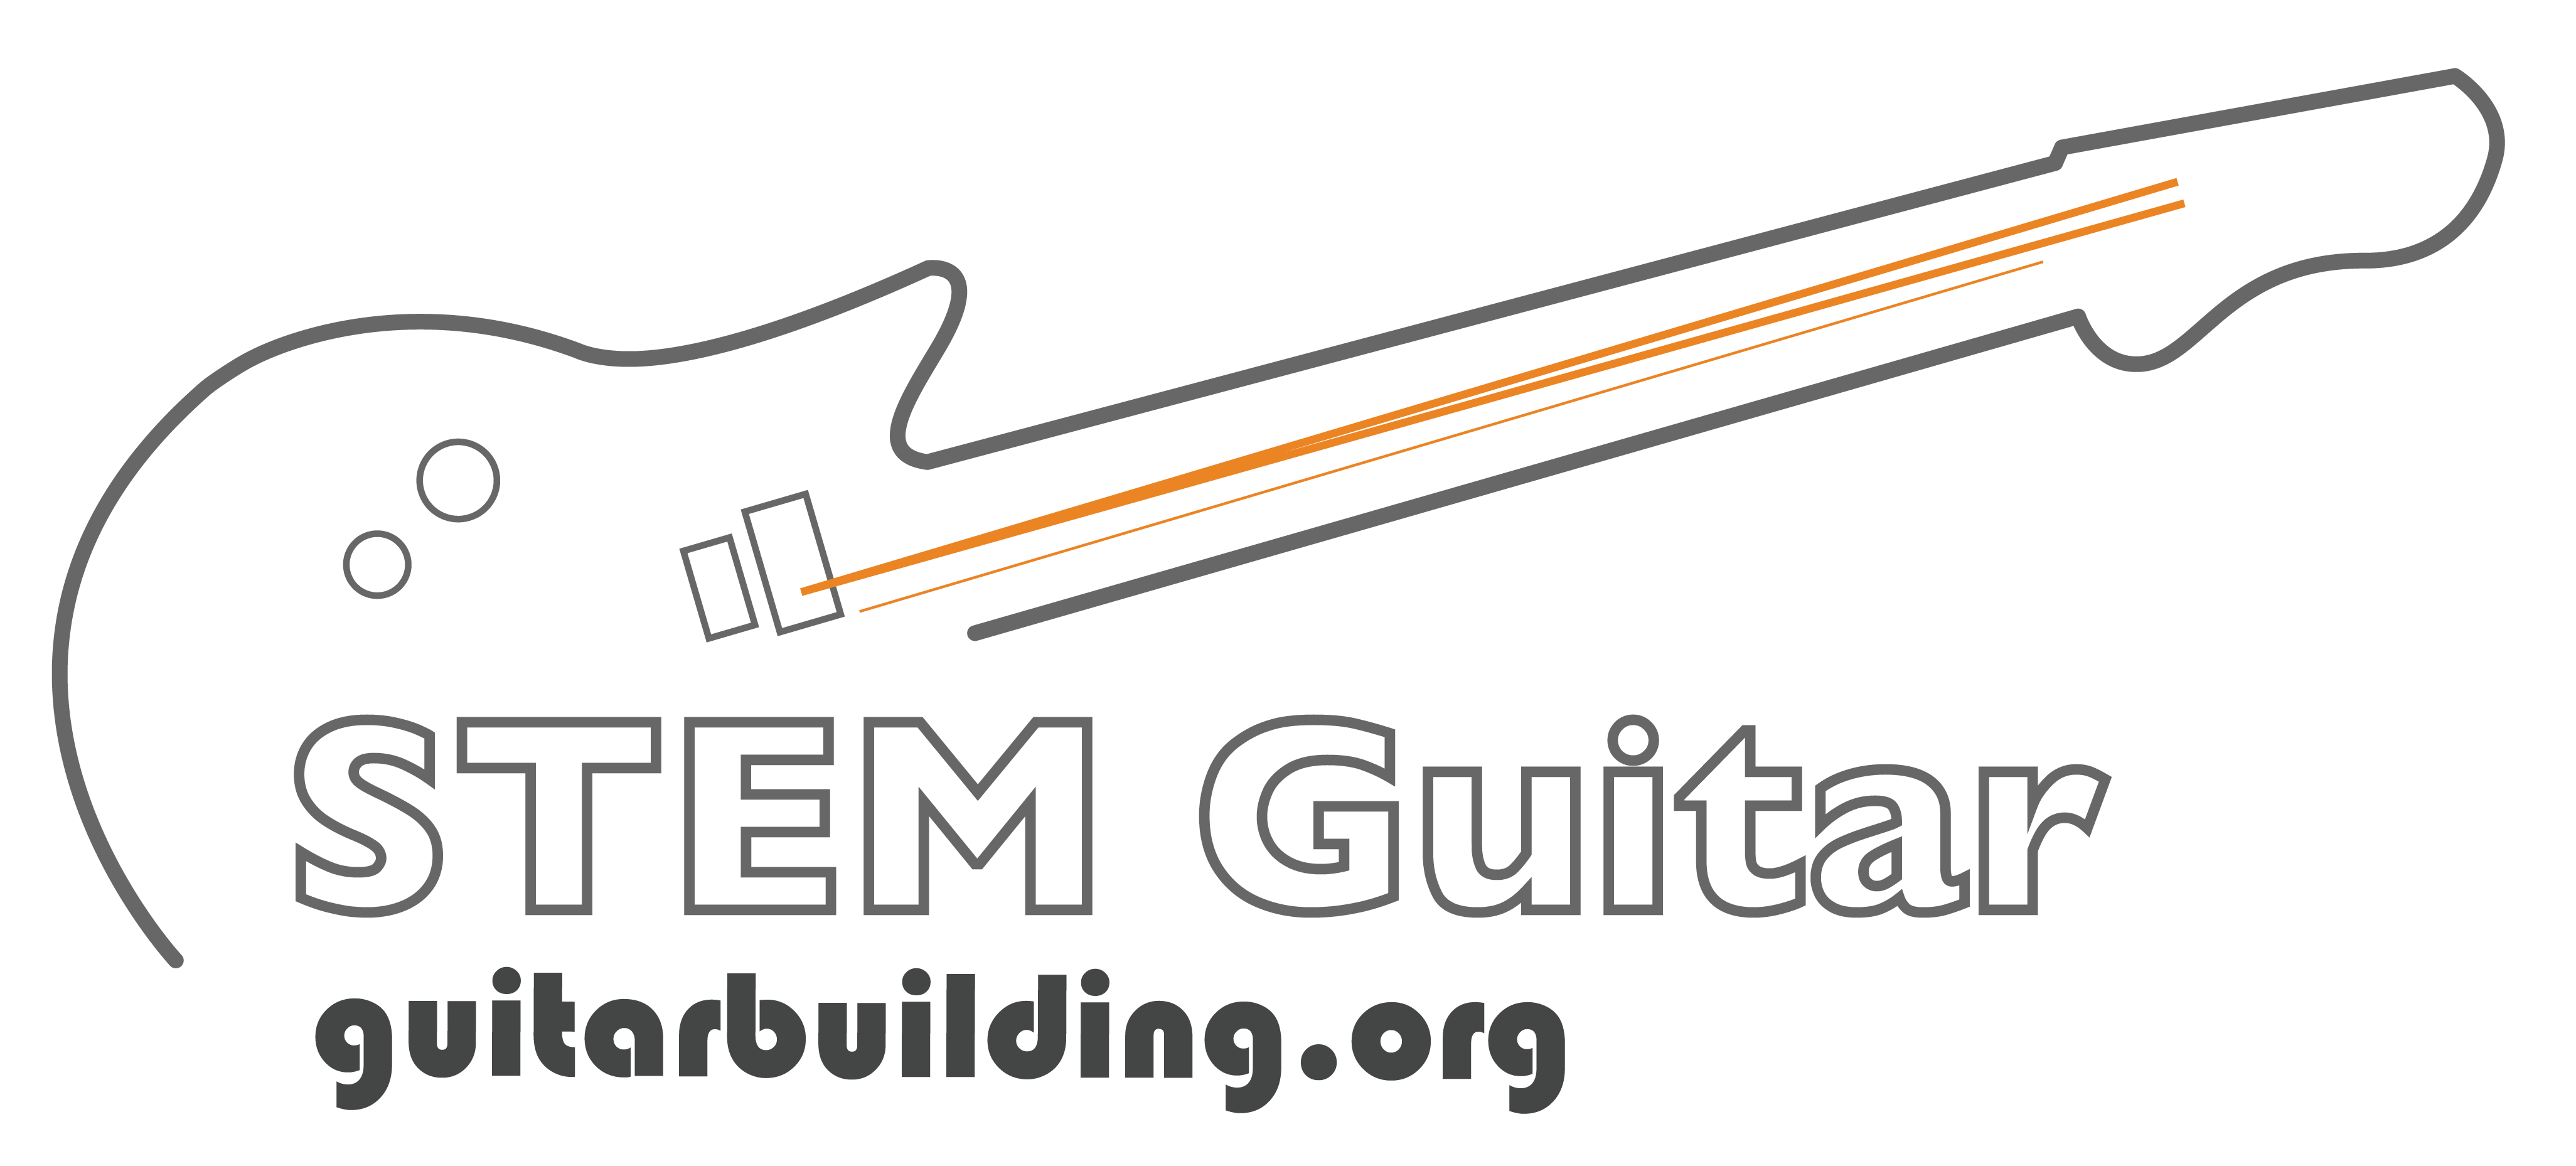 Electric Guitar Wiring Kits. Diagram. Auto Wiring Diagram